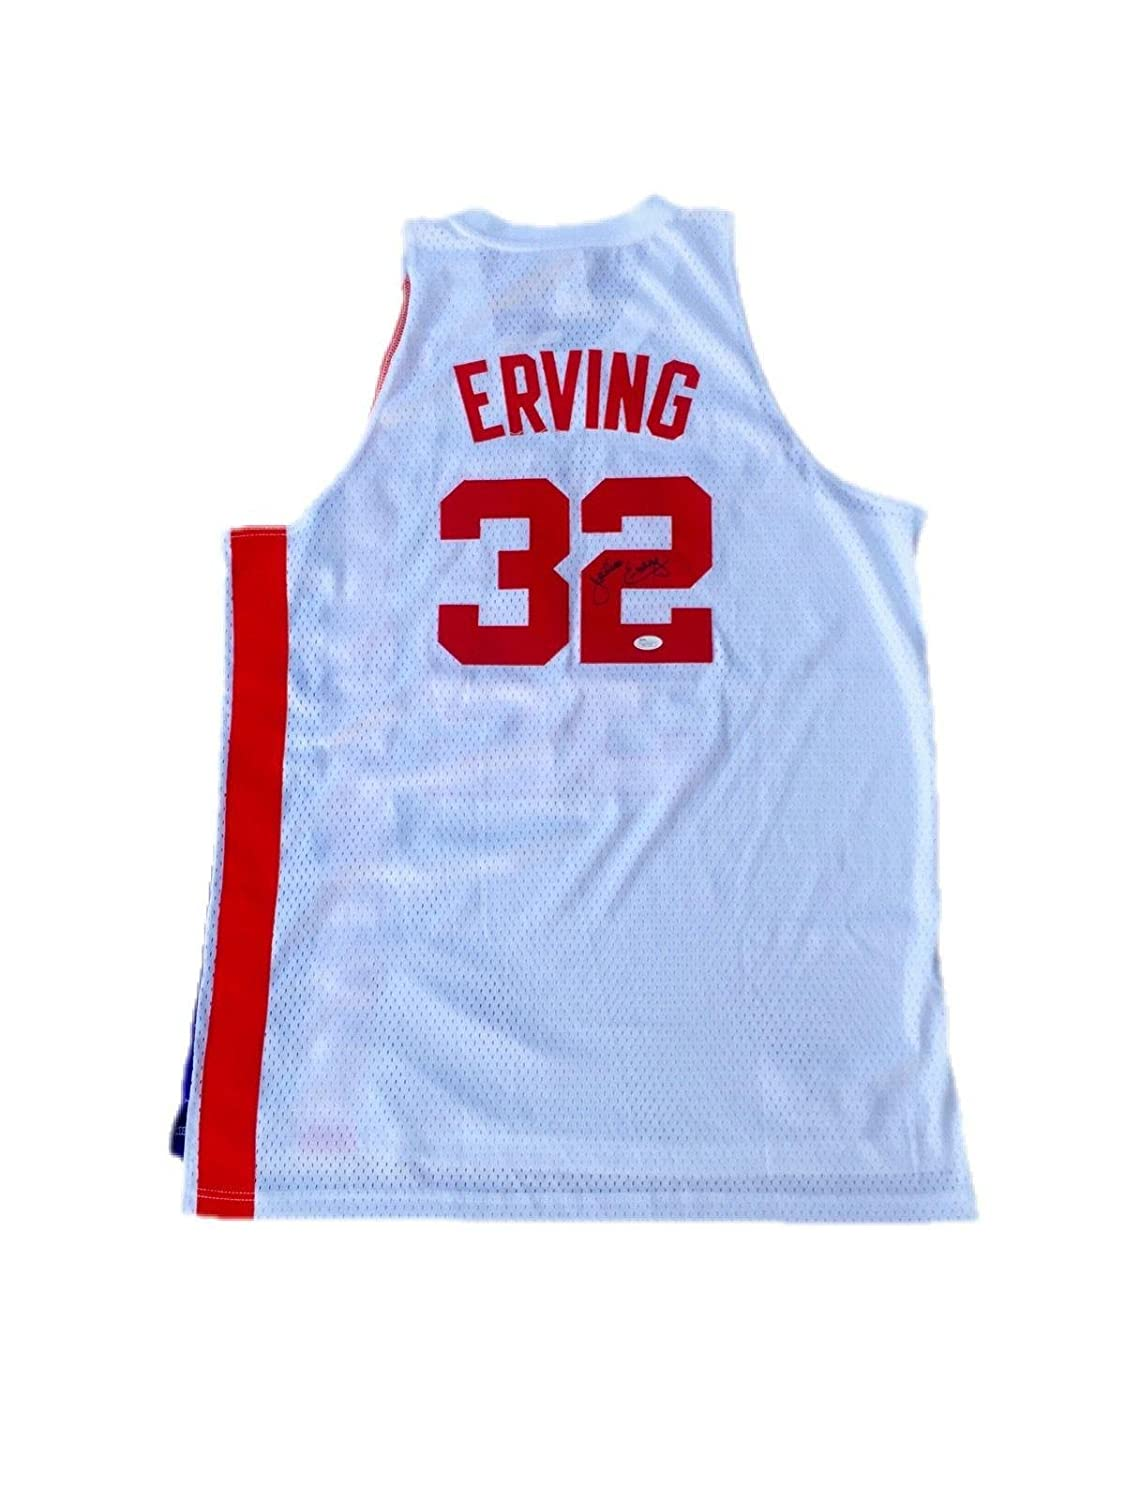 check out 26a72 55391 Autographed Julius Erving Jersey - Away ABA - JSA Certified ...